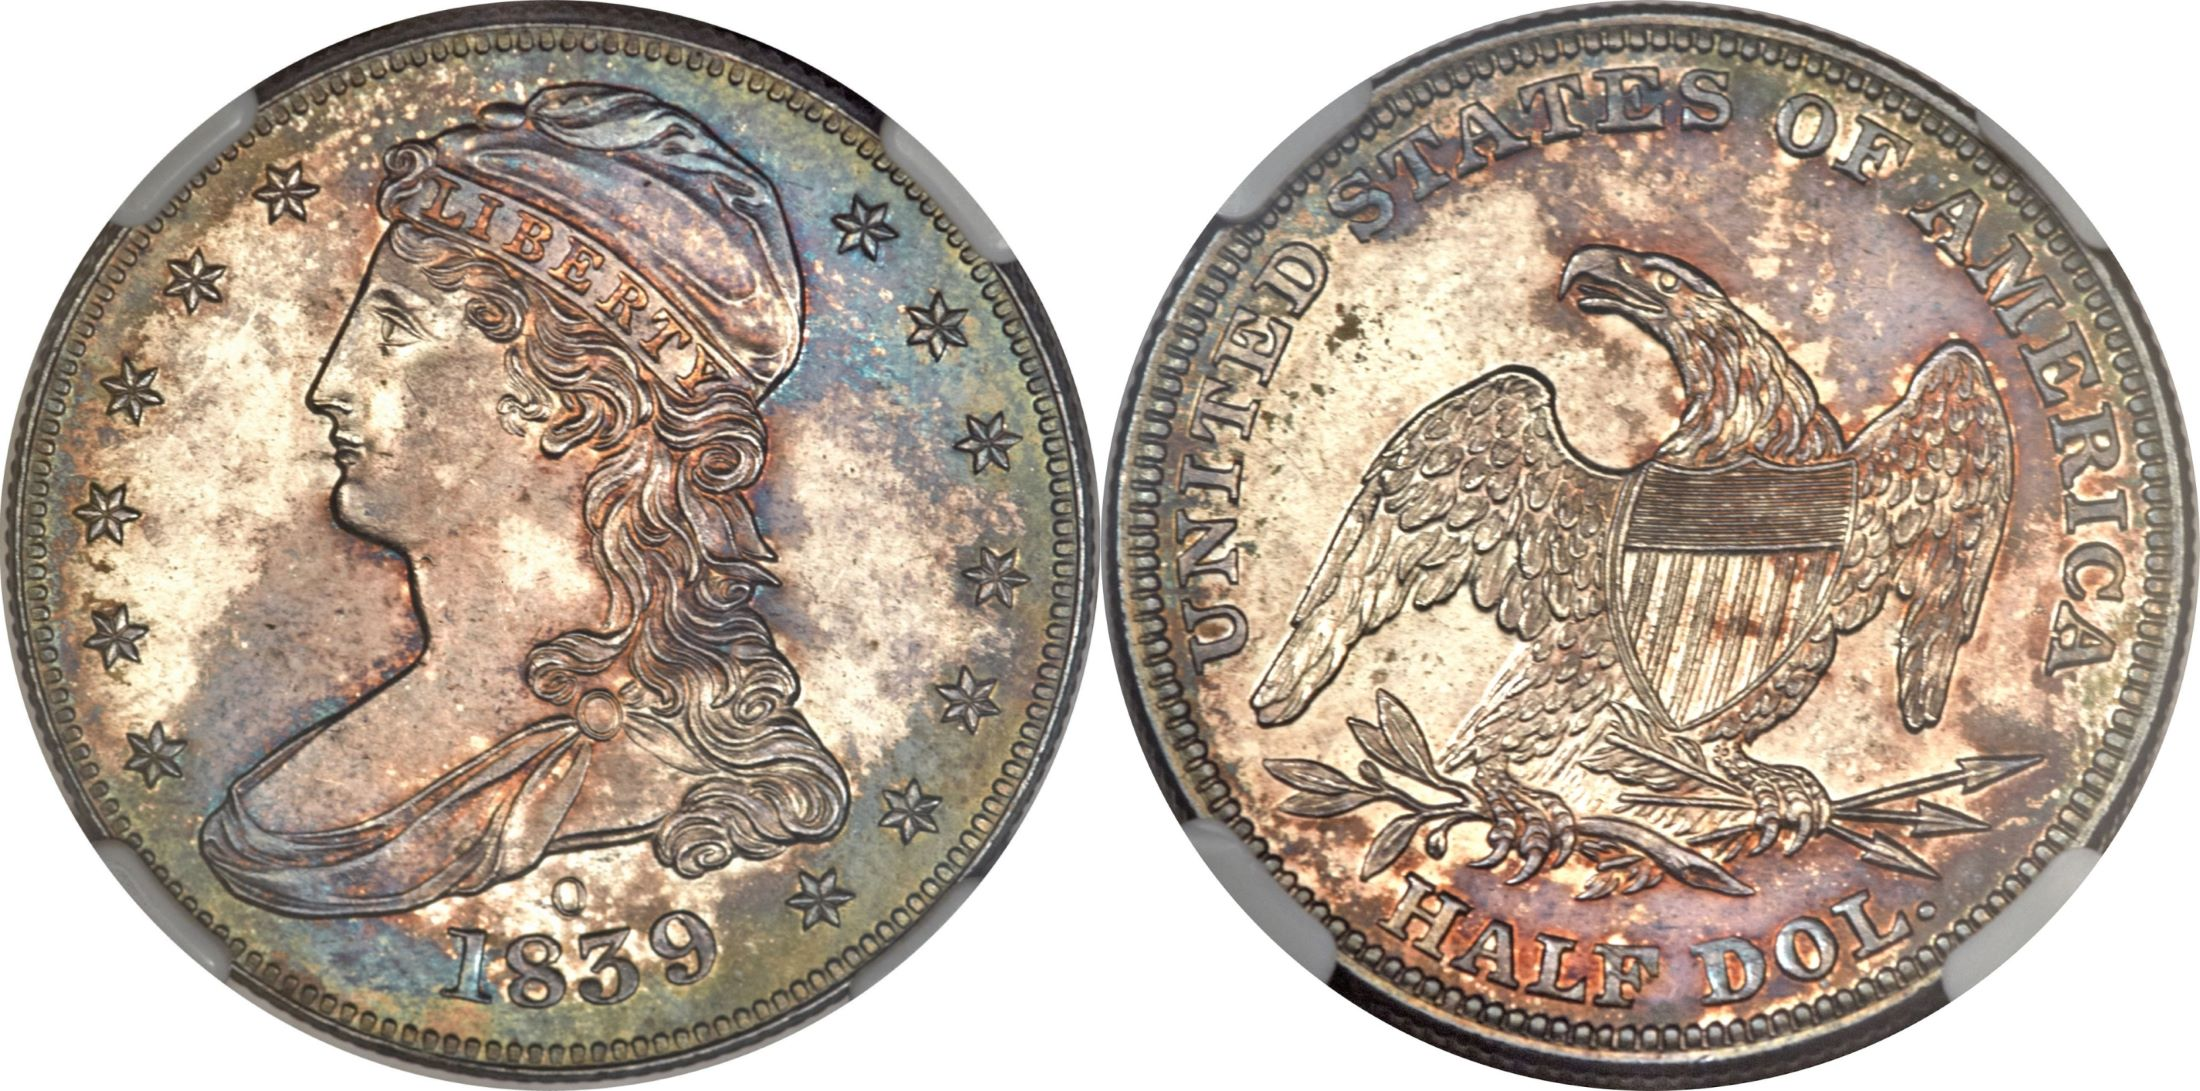 PR64 estimated grade<BR>Image courtesy of Heritage Numismatic Auctions